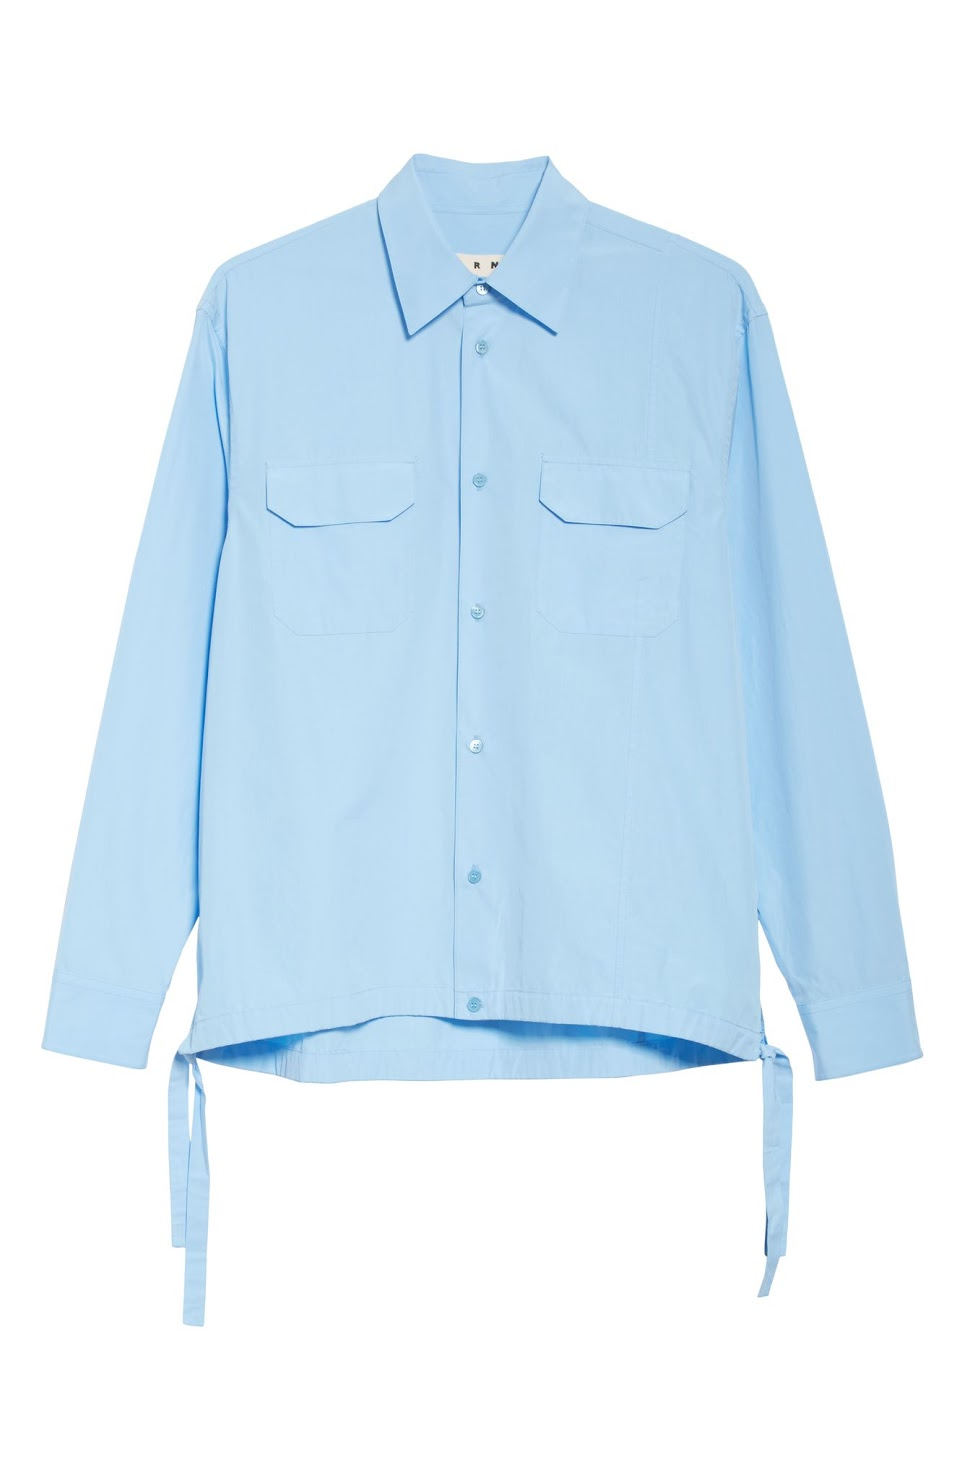 Marni_Cotton Workwear Shir_Light Blue_$550.jpeg